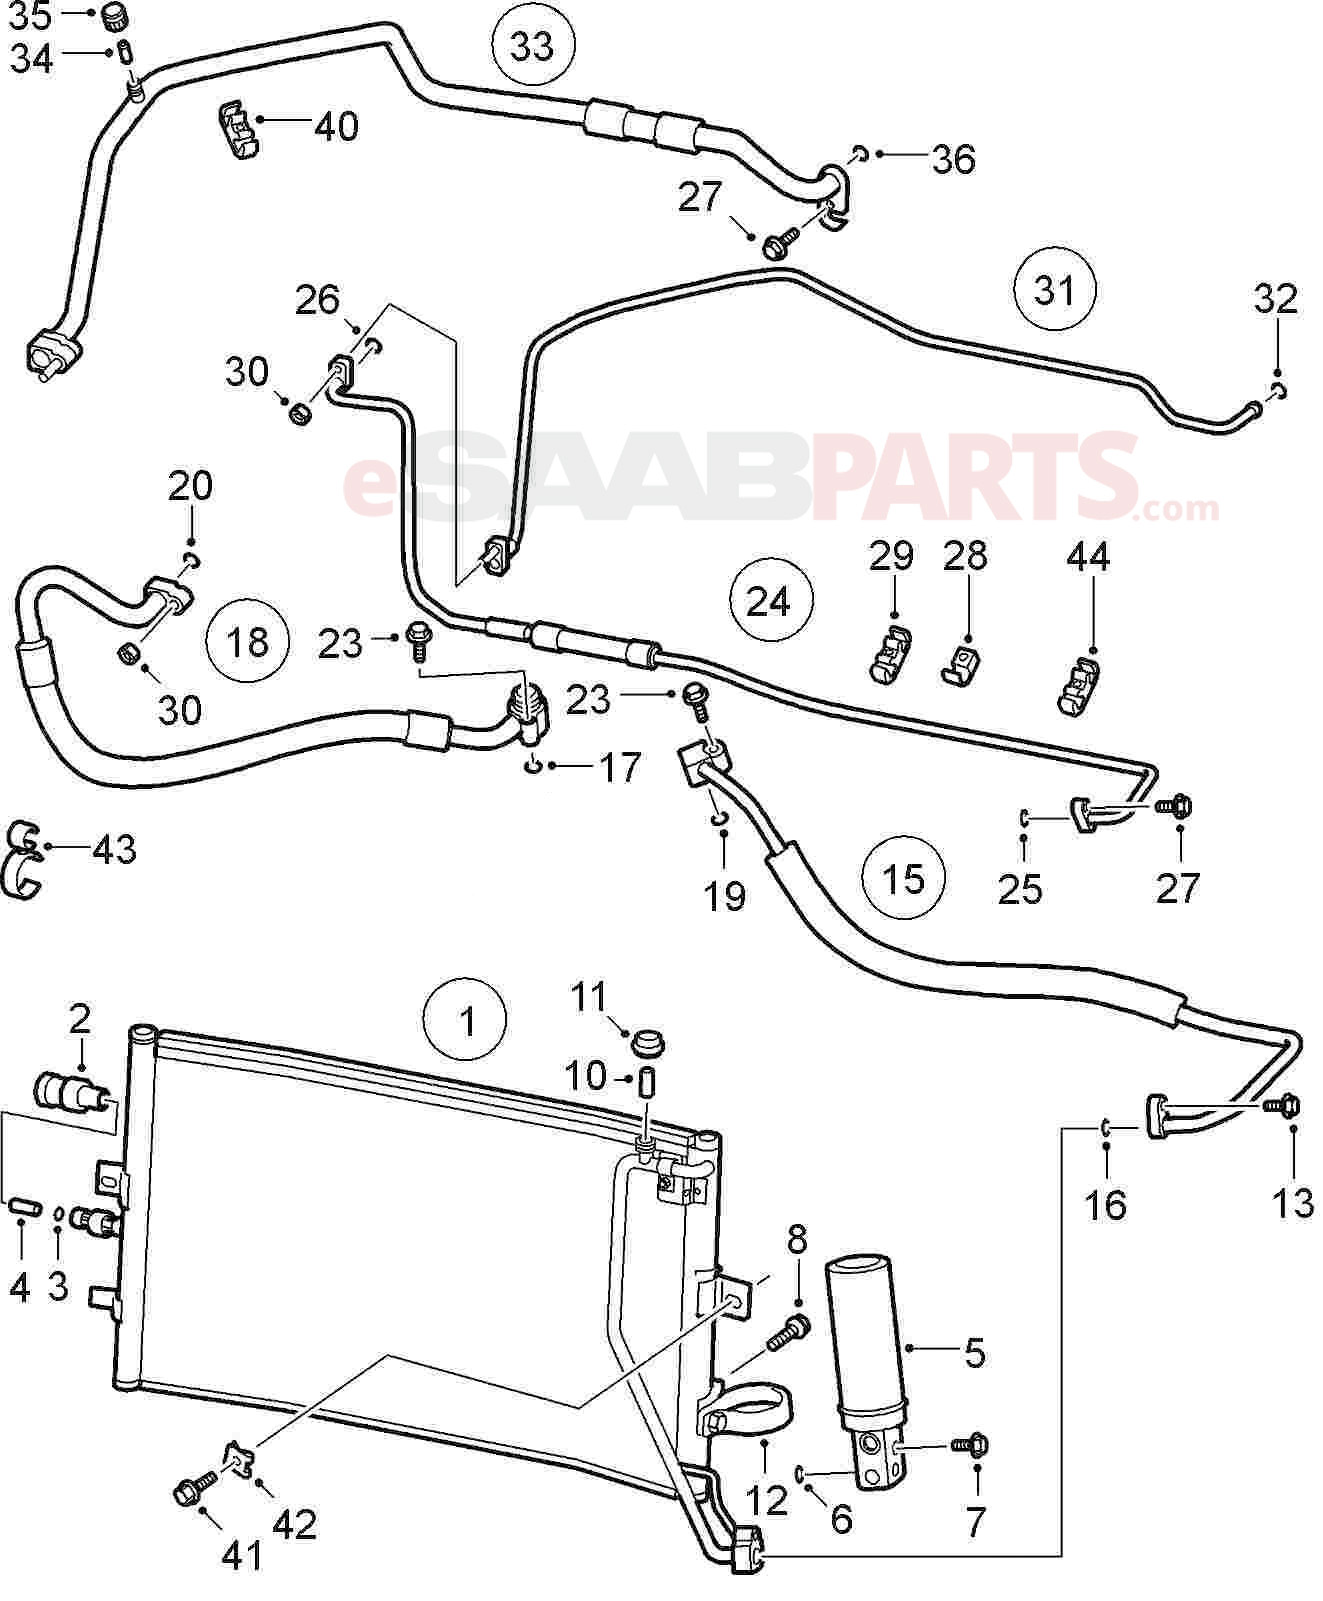 saab 9 5 engine parts diagram  u2022 wiring diagram for free